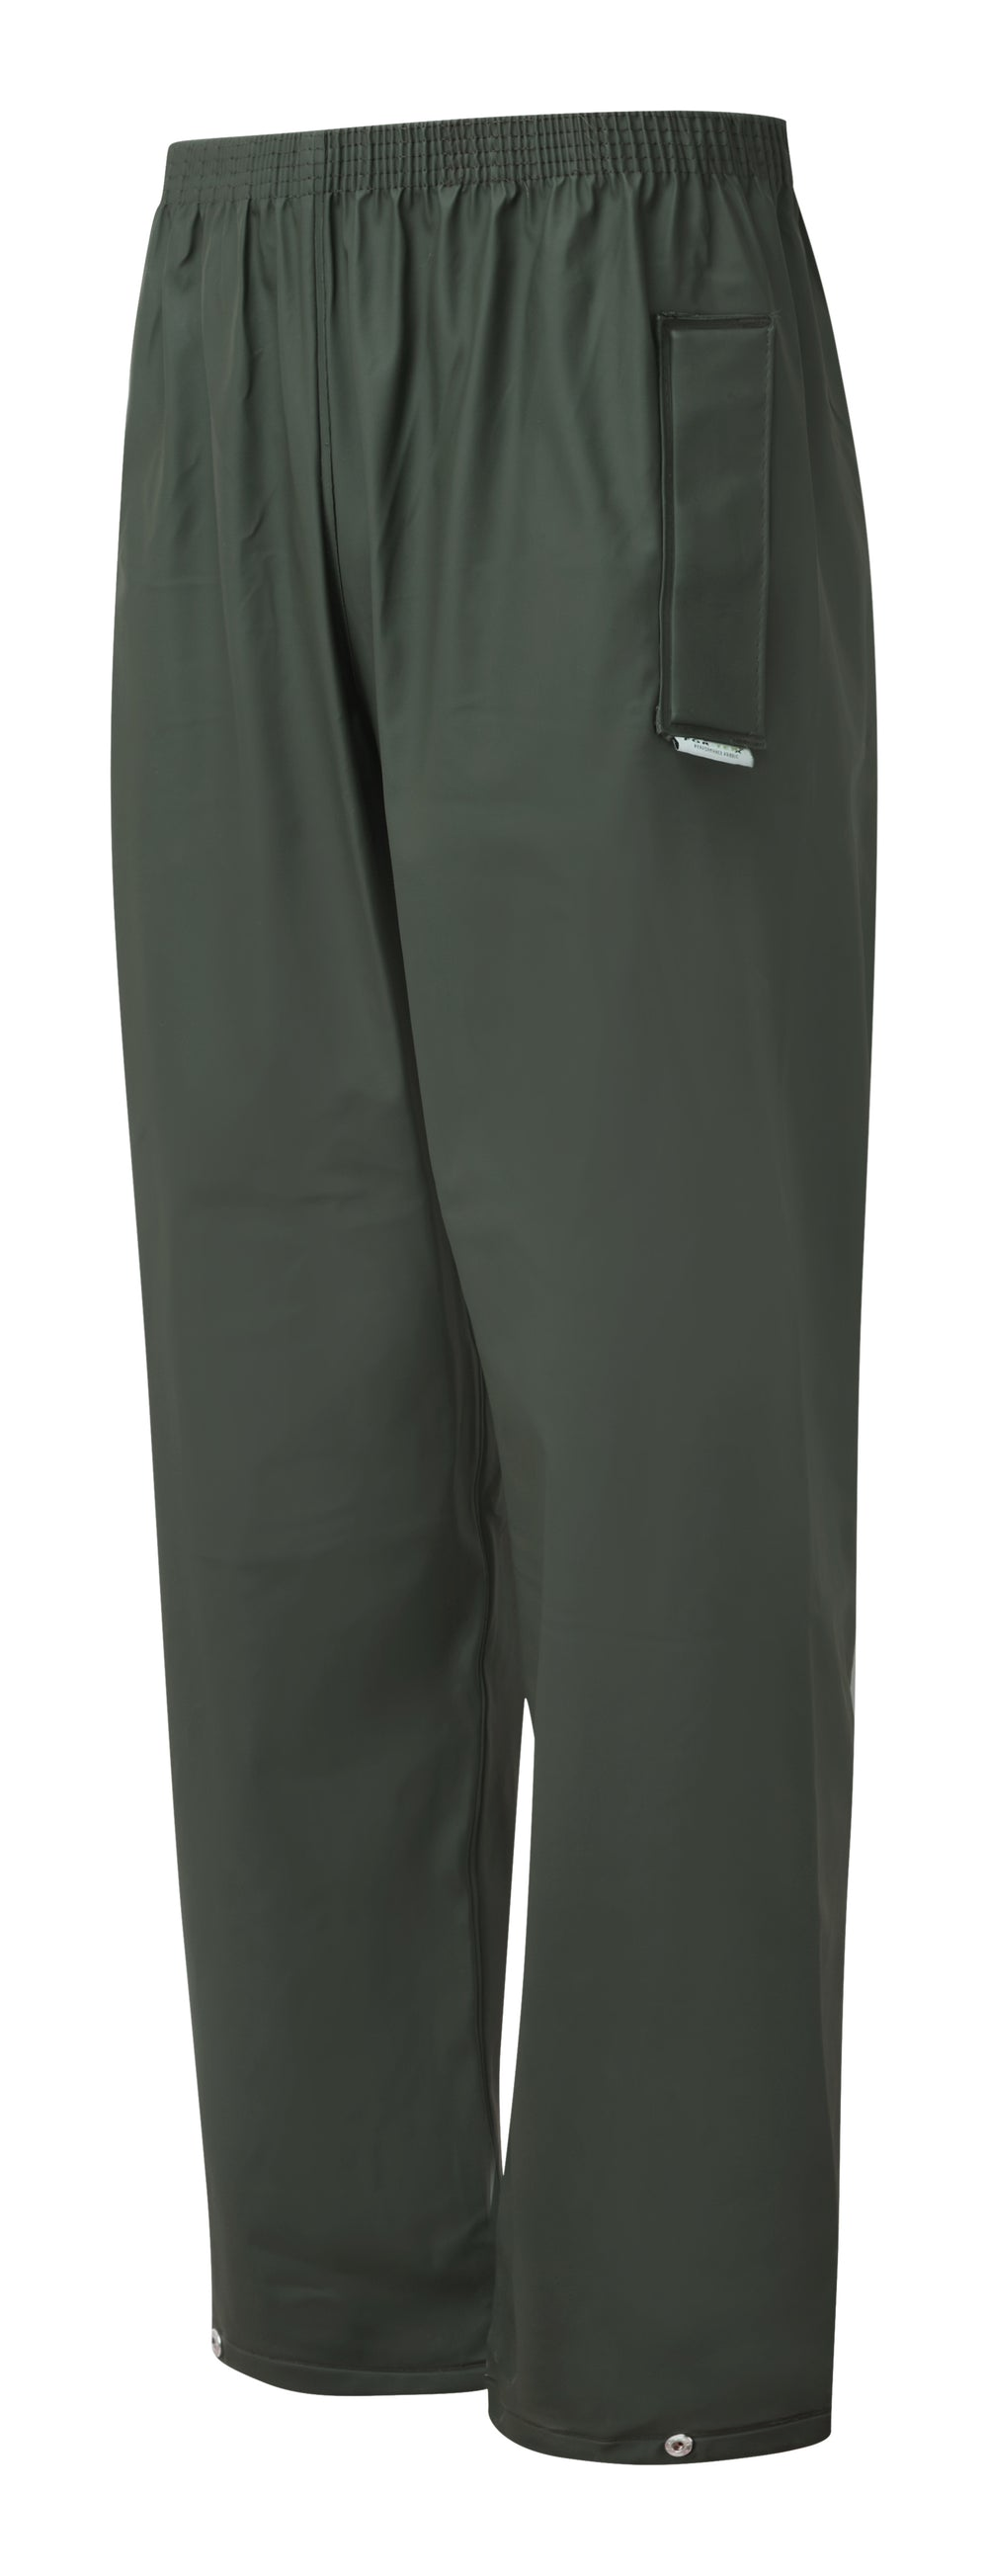 Fort Flex Waterproof Trousers